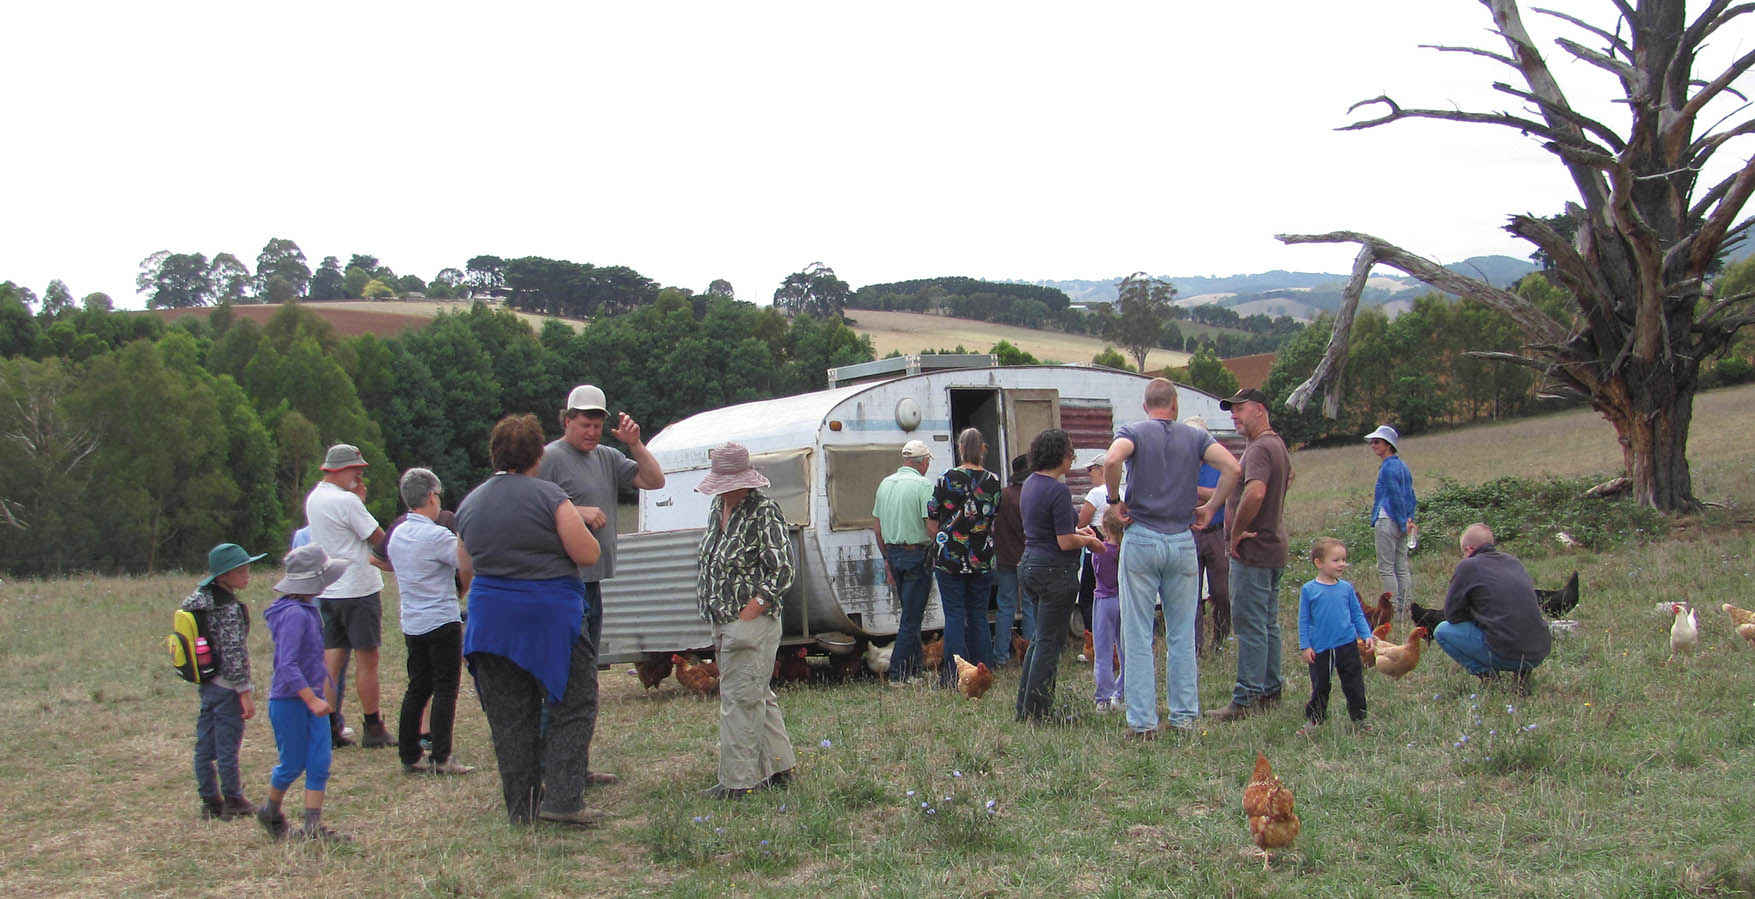 Participants inspect a caravan fitted out to house free-range chickens on an organic dairy farm near Warragul during a Mt Worth and District Landcare Group farm walk.